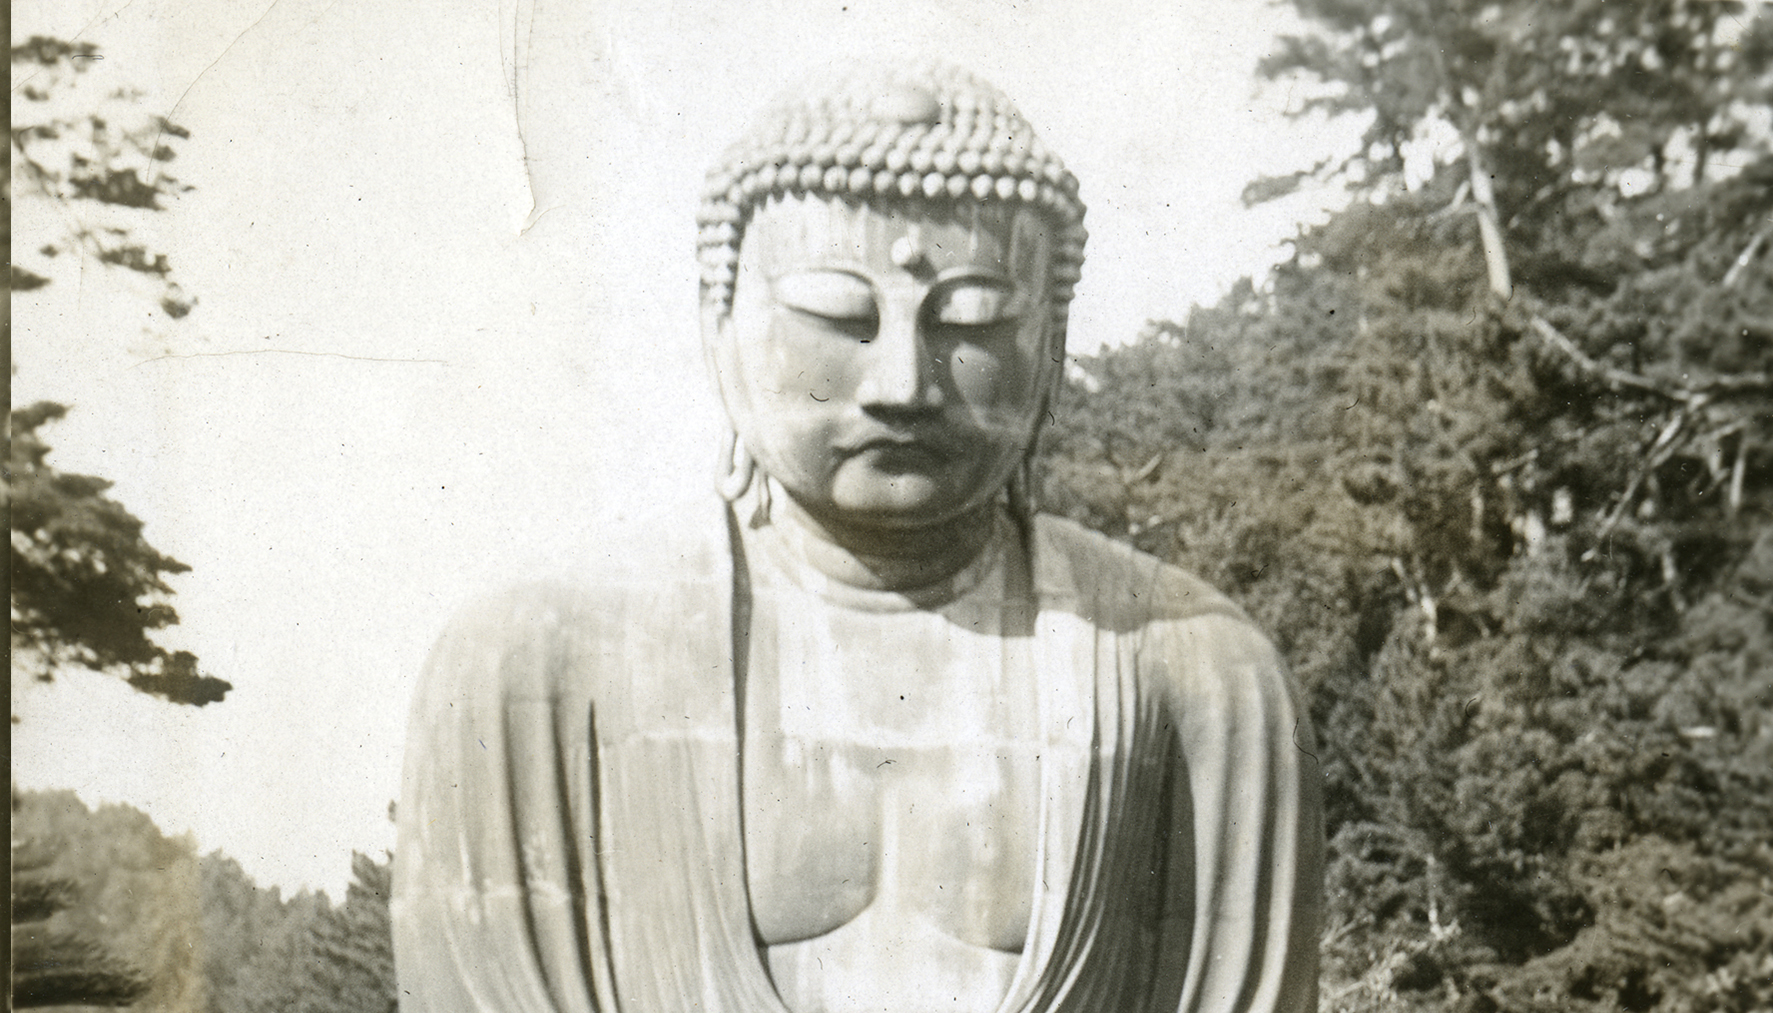 Buddha statue in Kamakur, Japan, 1930. Florence Cottingham seated in the rickshaw.